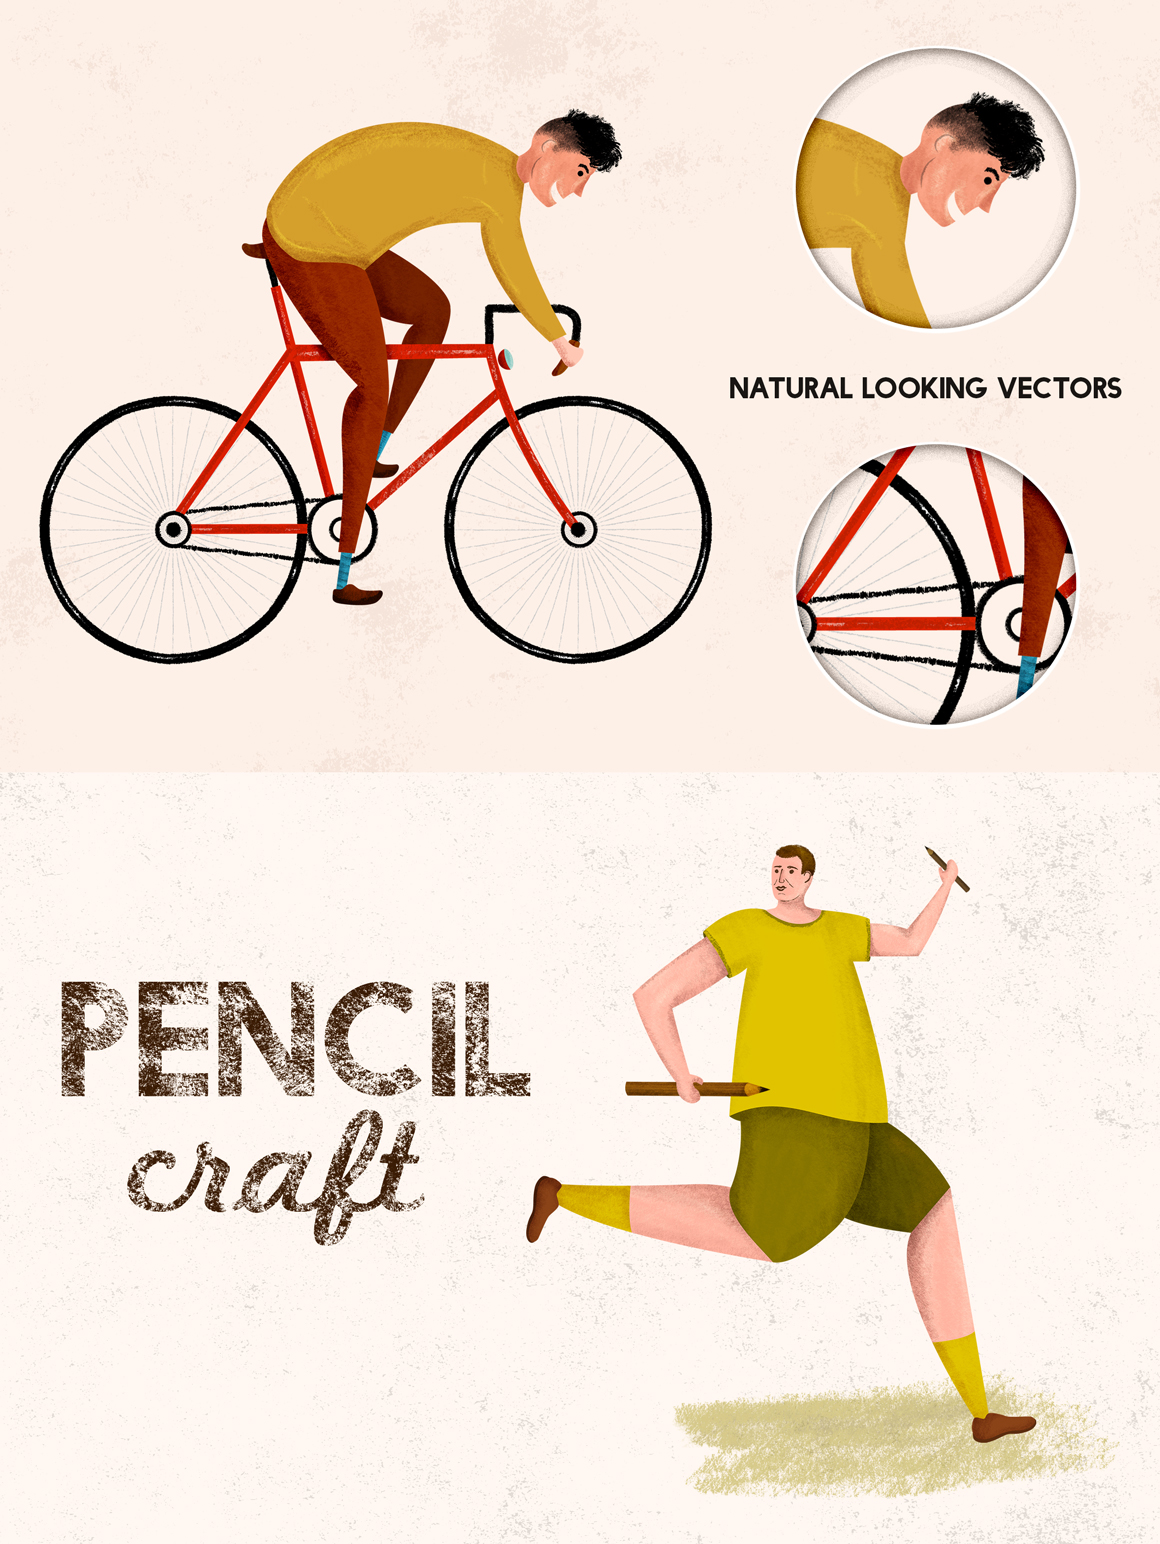 Pencilcraft - Pencil Brushes for Adobe Illustrator